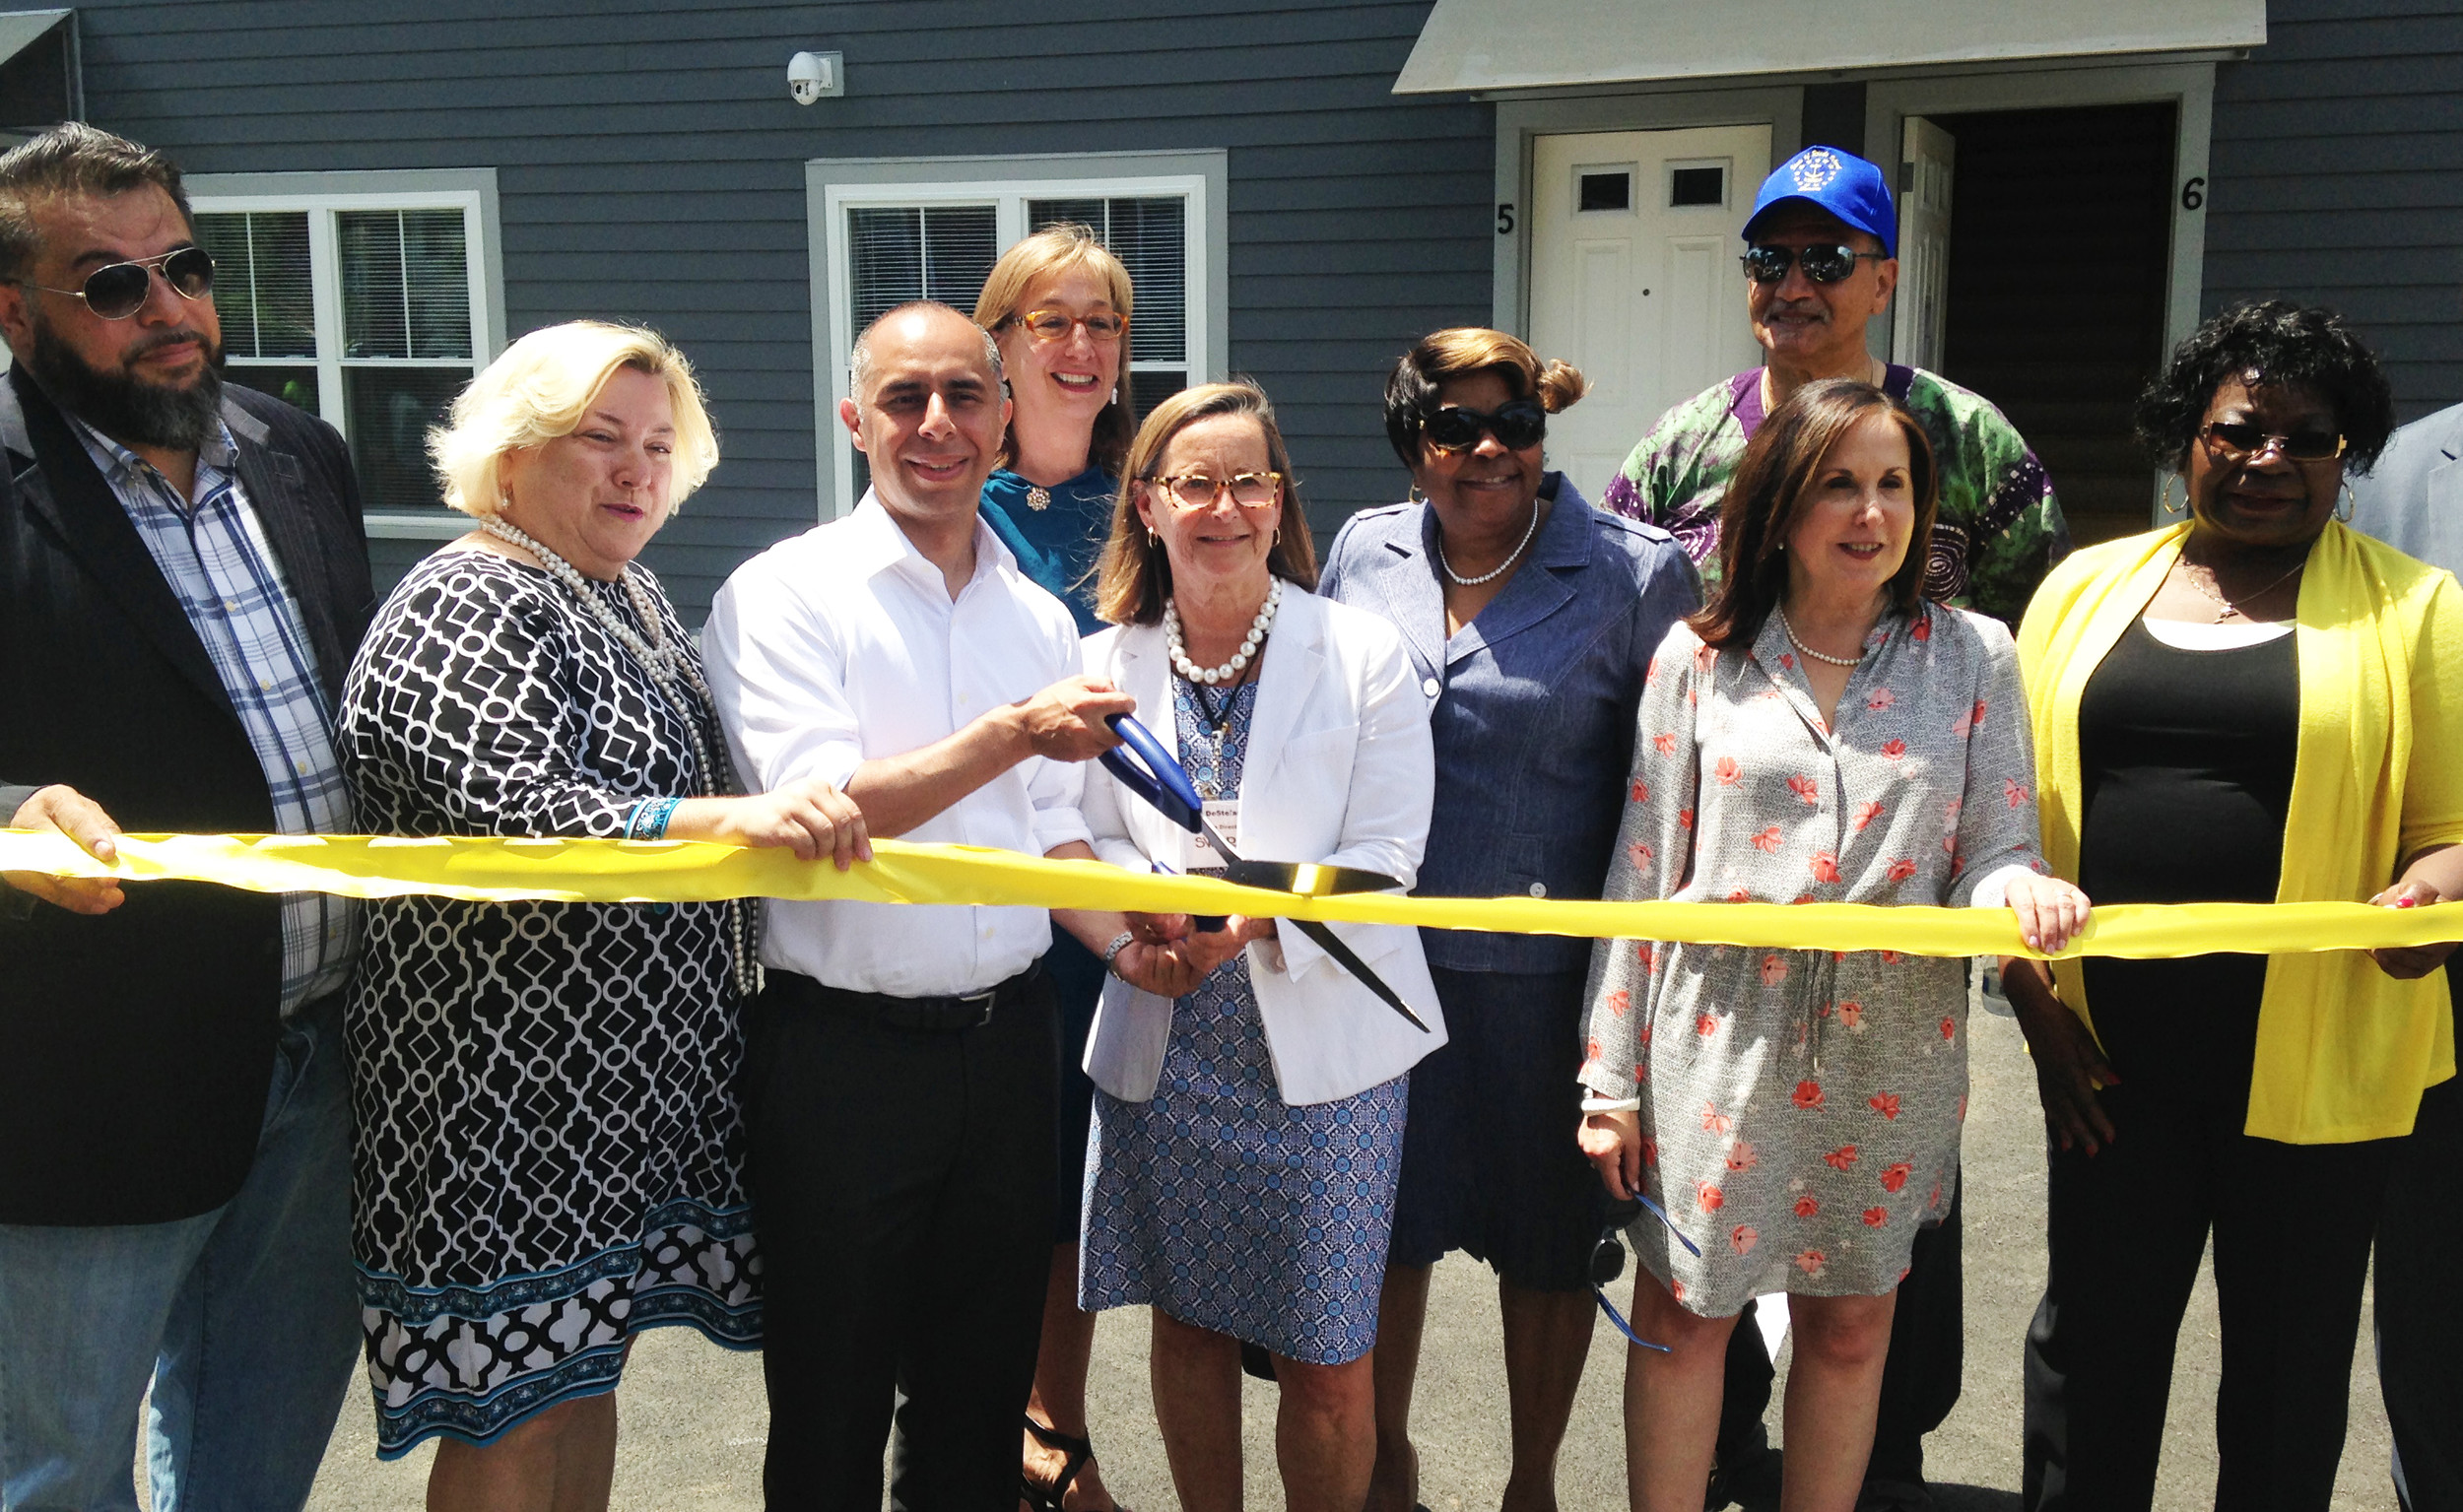 Providence Mayor Jorge Elorza, holding the scissors, cuts the ceremonial ribbon at the opening of the 841 Broad Street mixed used development.